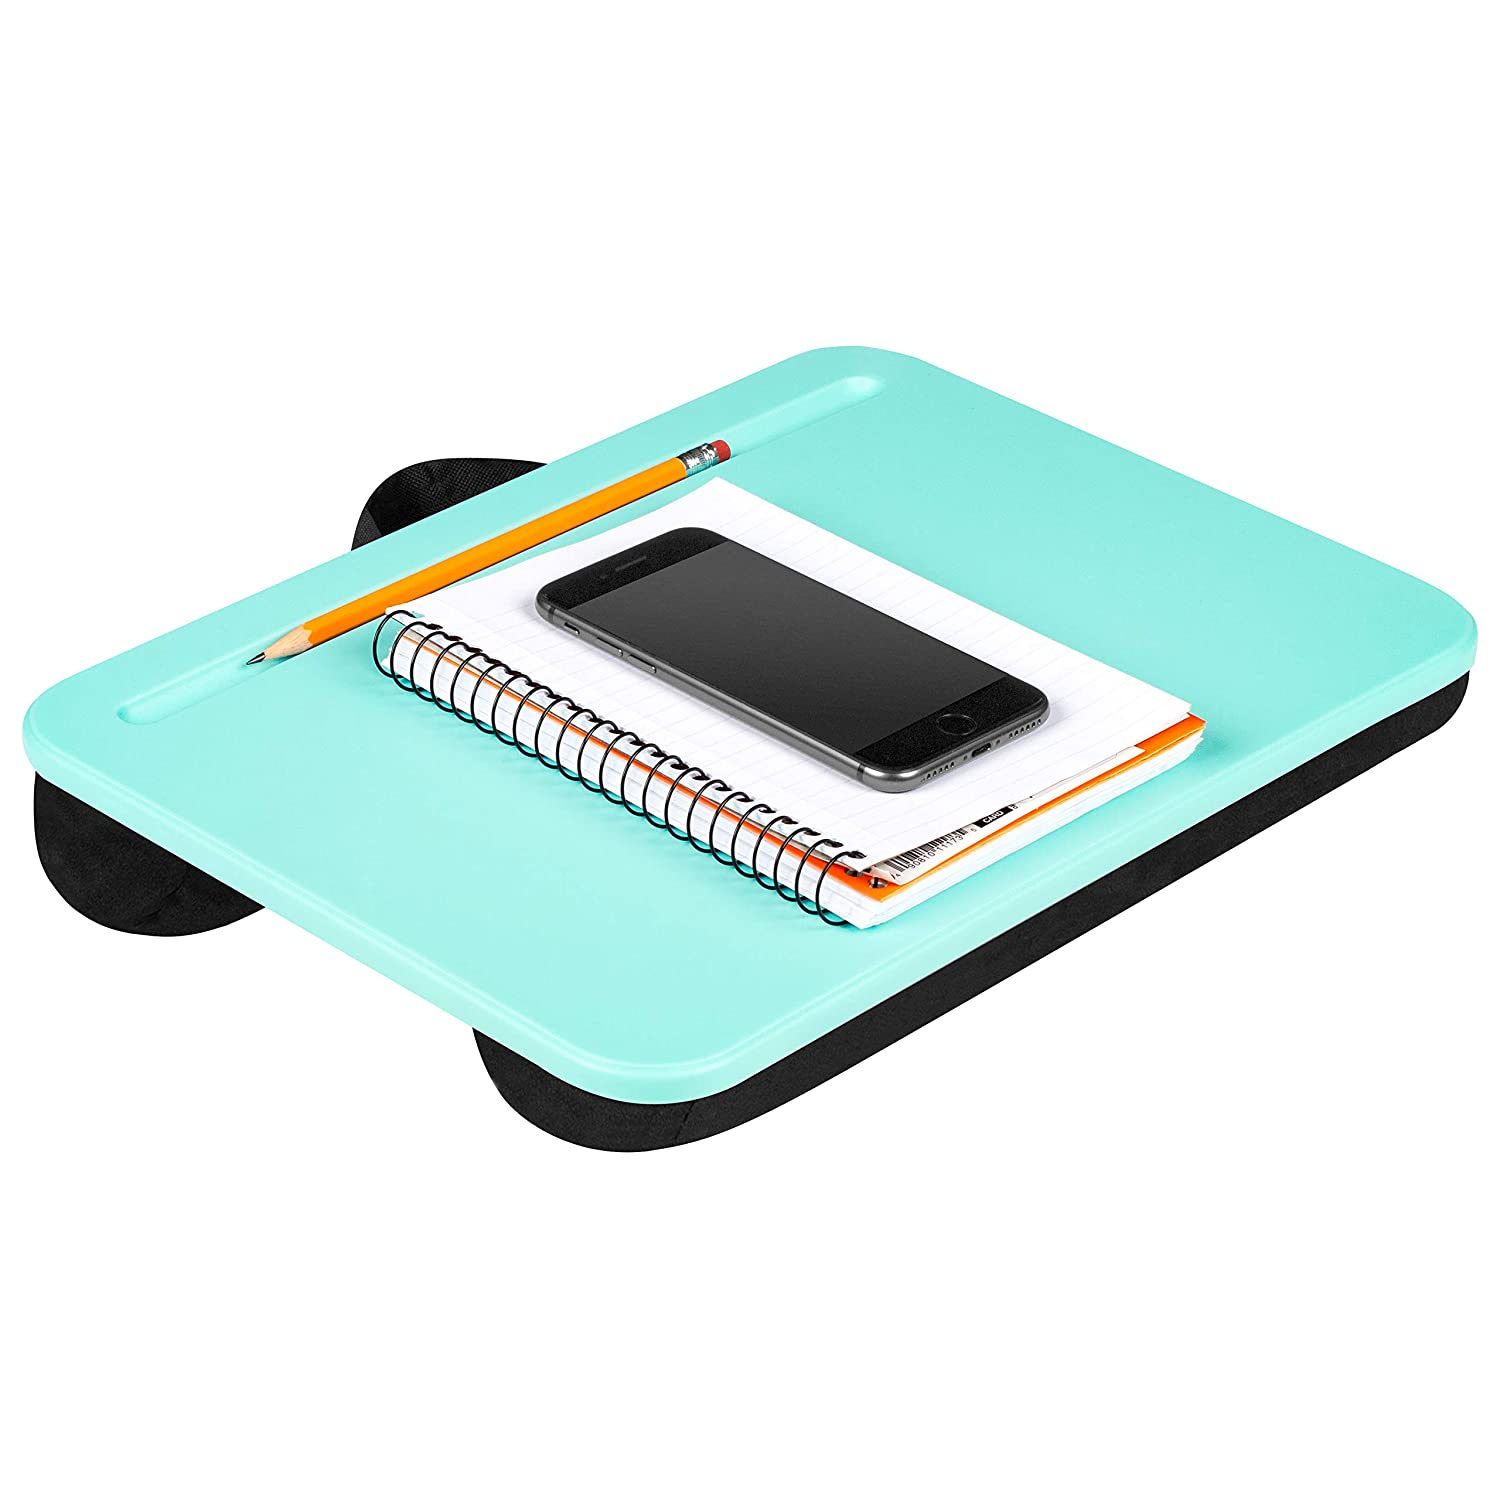 LapGear Compact Lap Desk - Aqua Sky - Fits Up to 13.3 Inch Laptops - Style No. 43109